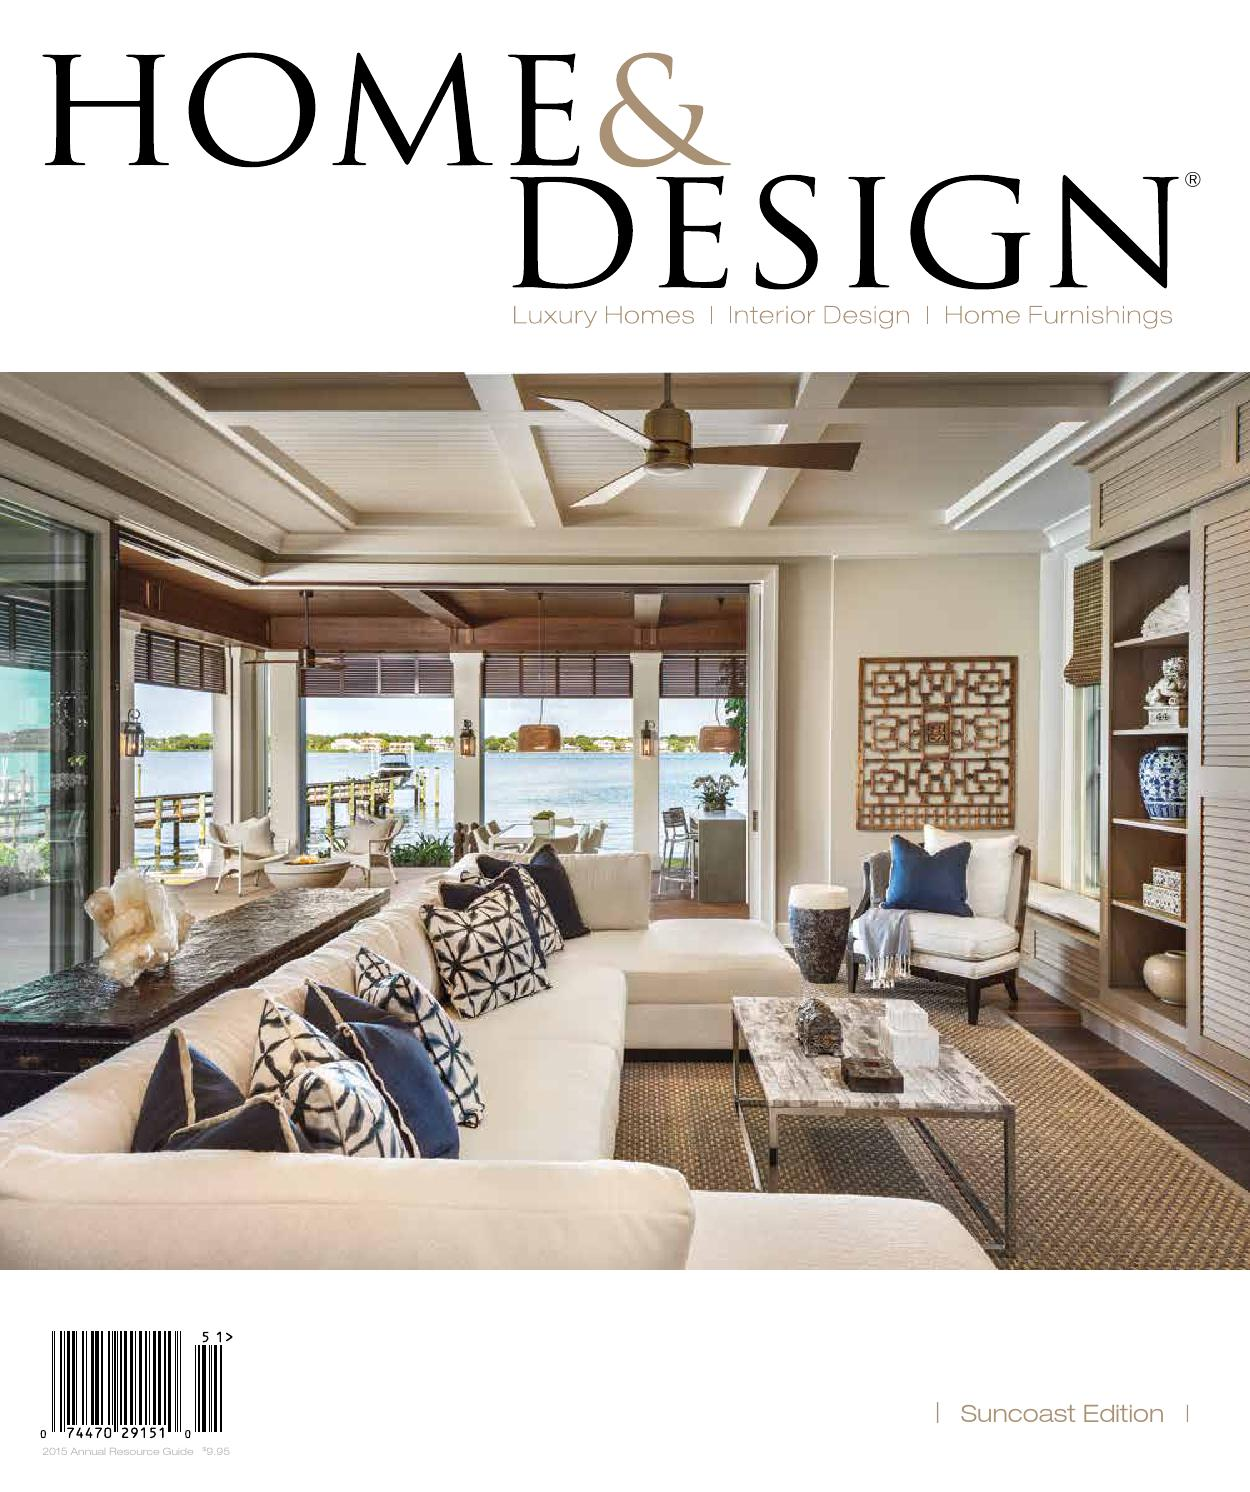 Home U0026 Design Magazine | Annual Resource Guide 2015 | Suncoast Florida  Edition By Anthony Spano   Issuu